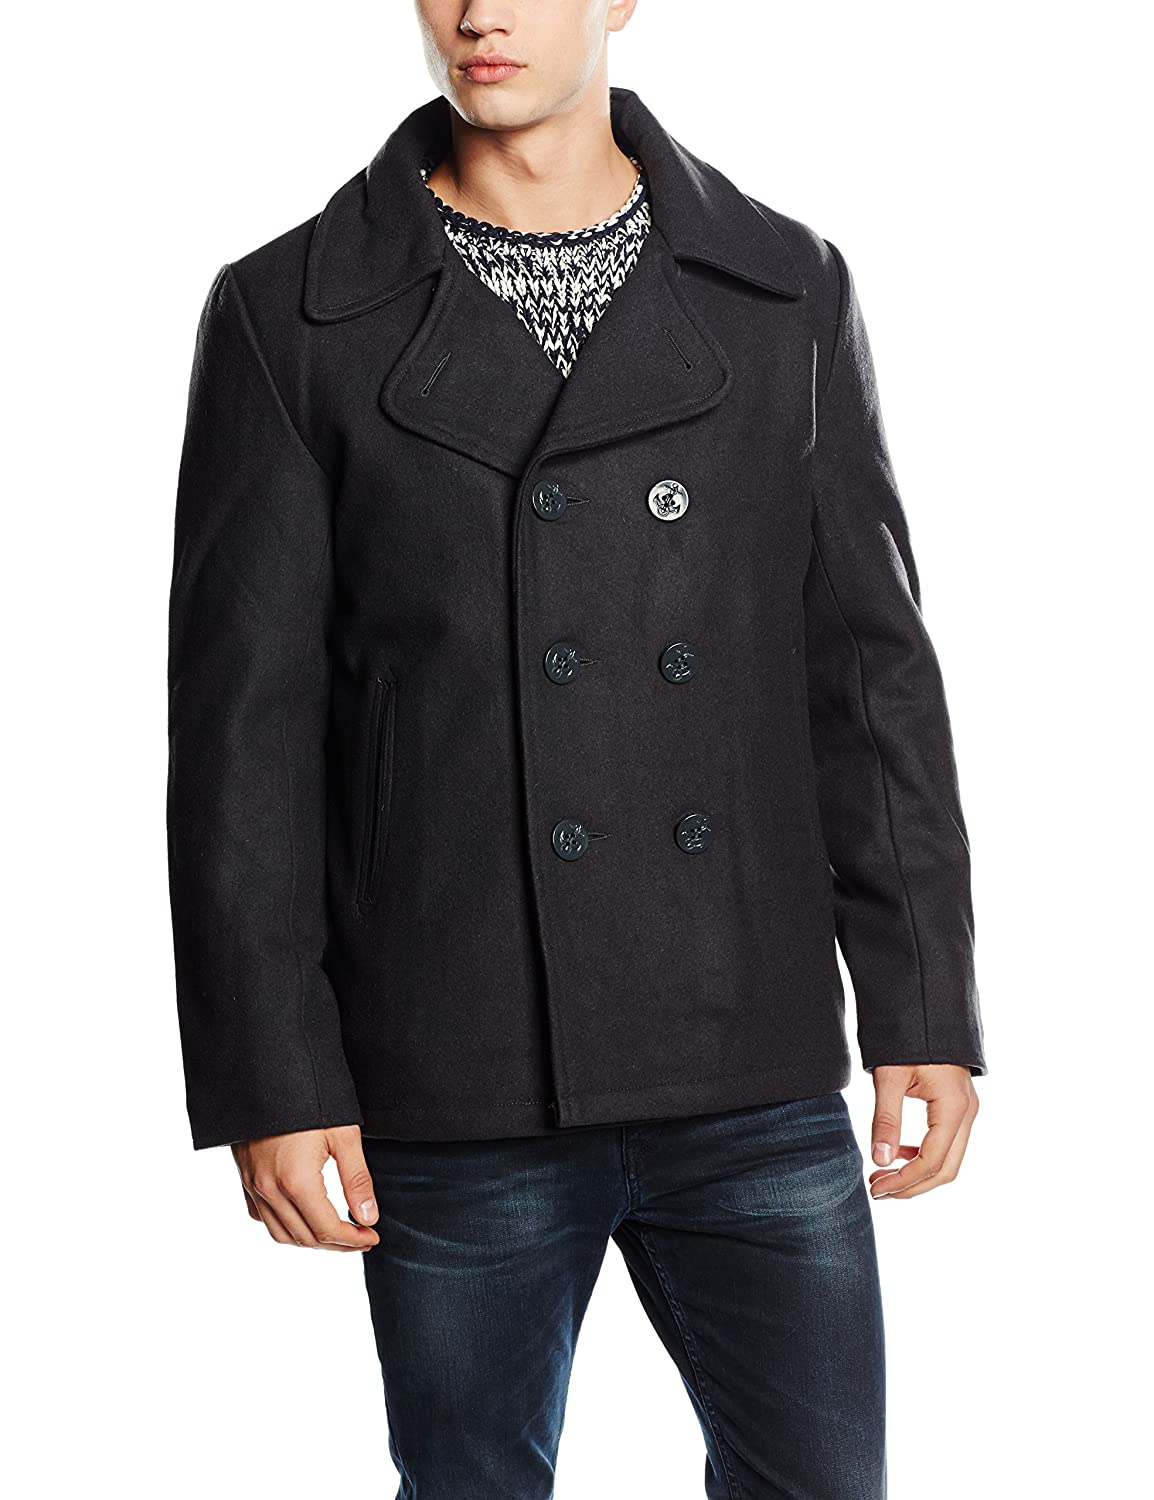 Navy Pea Coat Marine Wintermantel Jacke